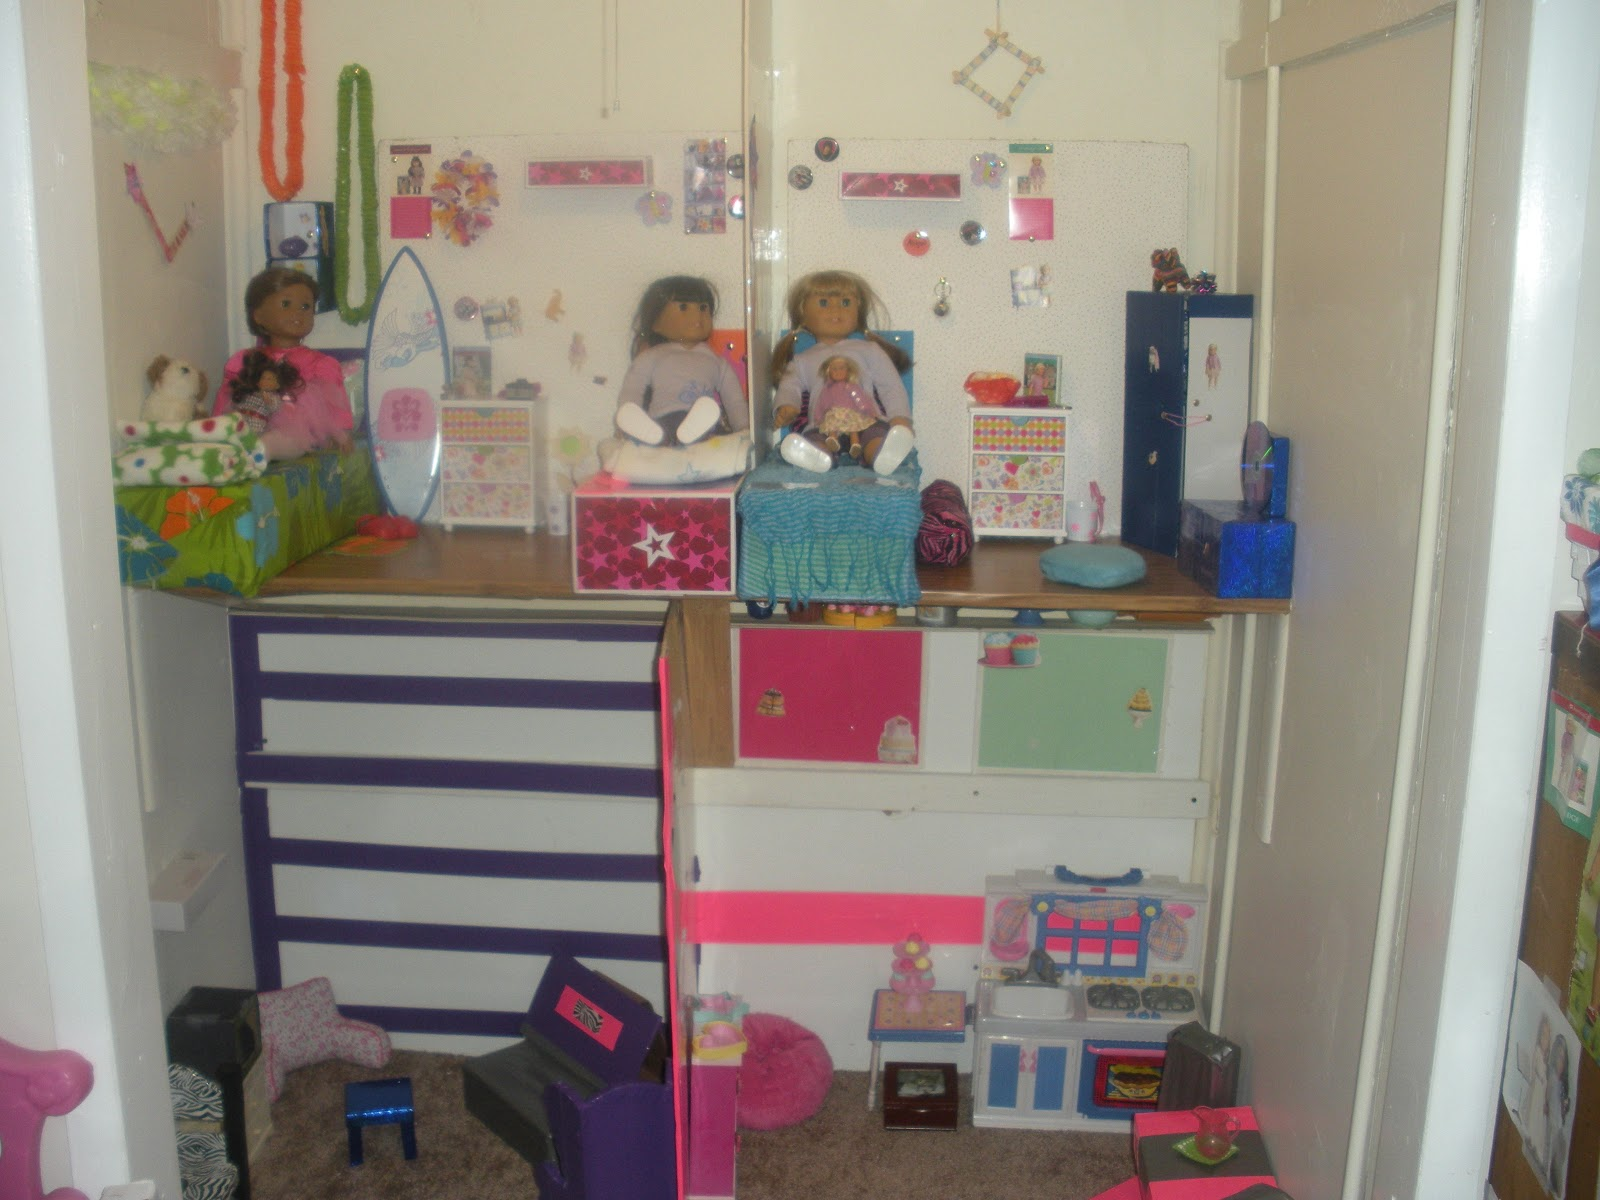 misskristiscraftteachingdollblog - How To Make A American Girl Room